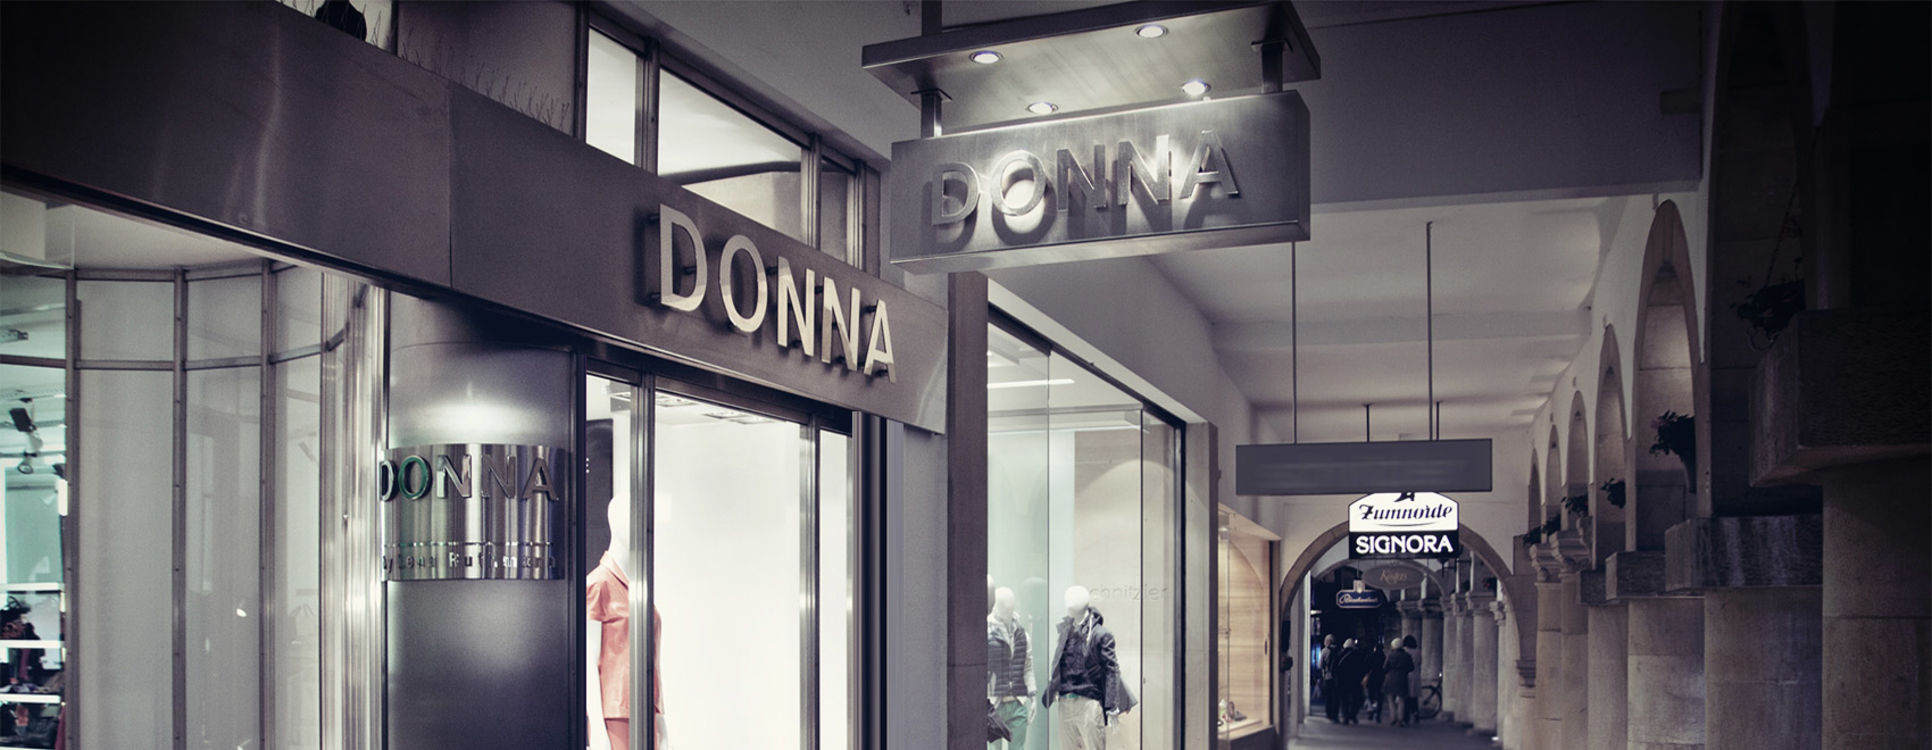 DONNA by Lena Ruthmann in Münster (Bild 7)